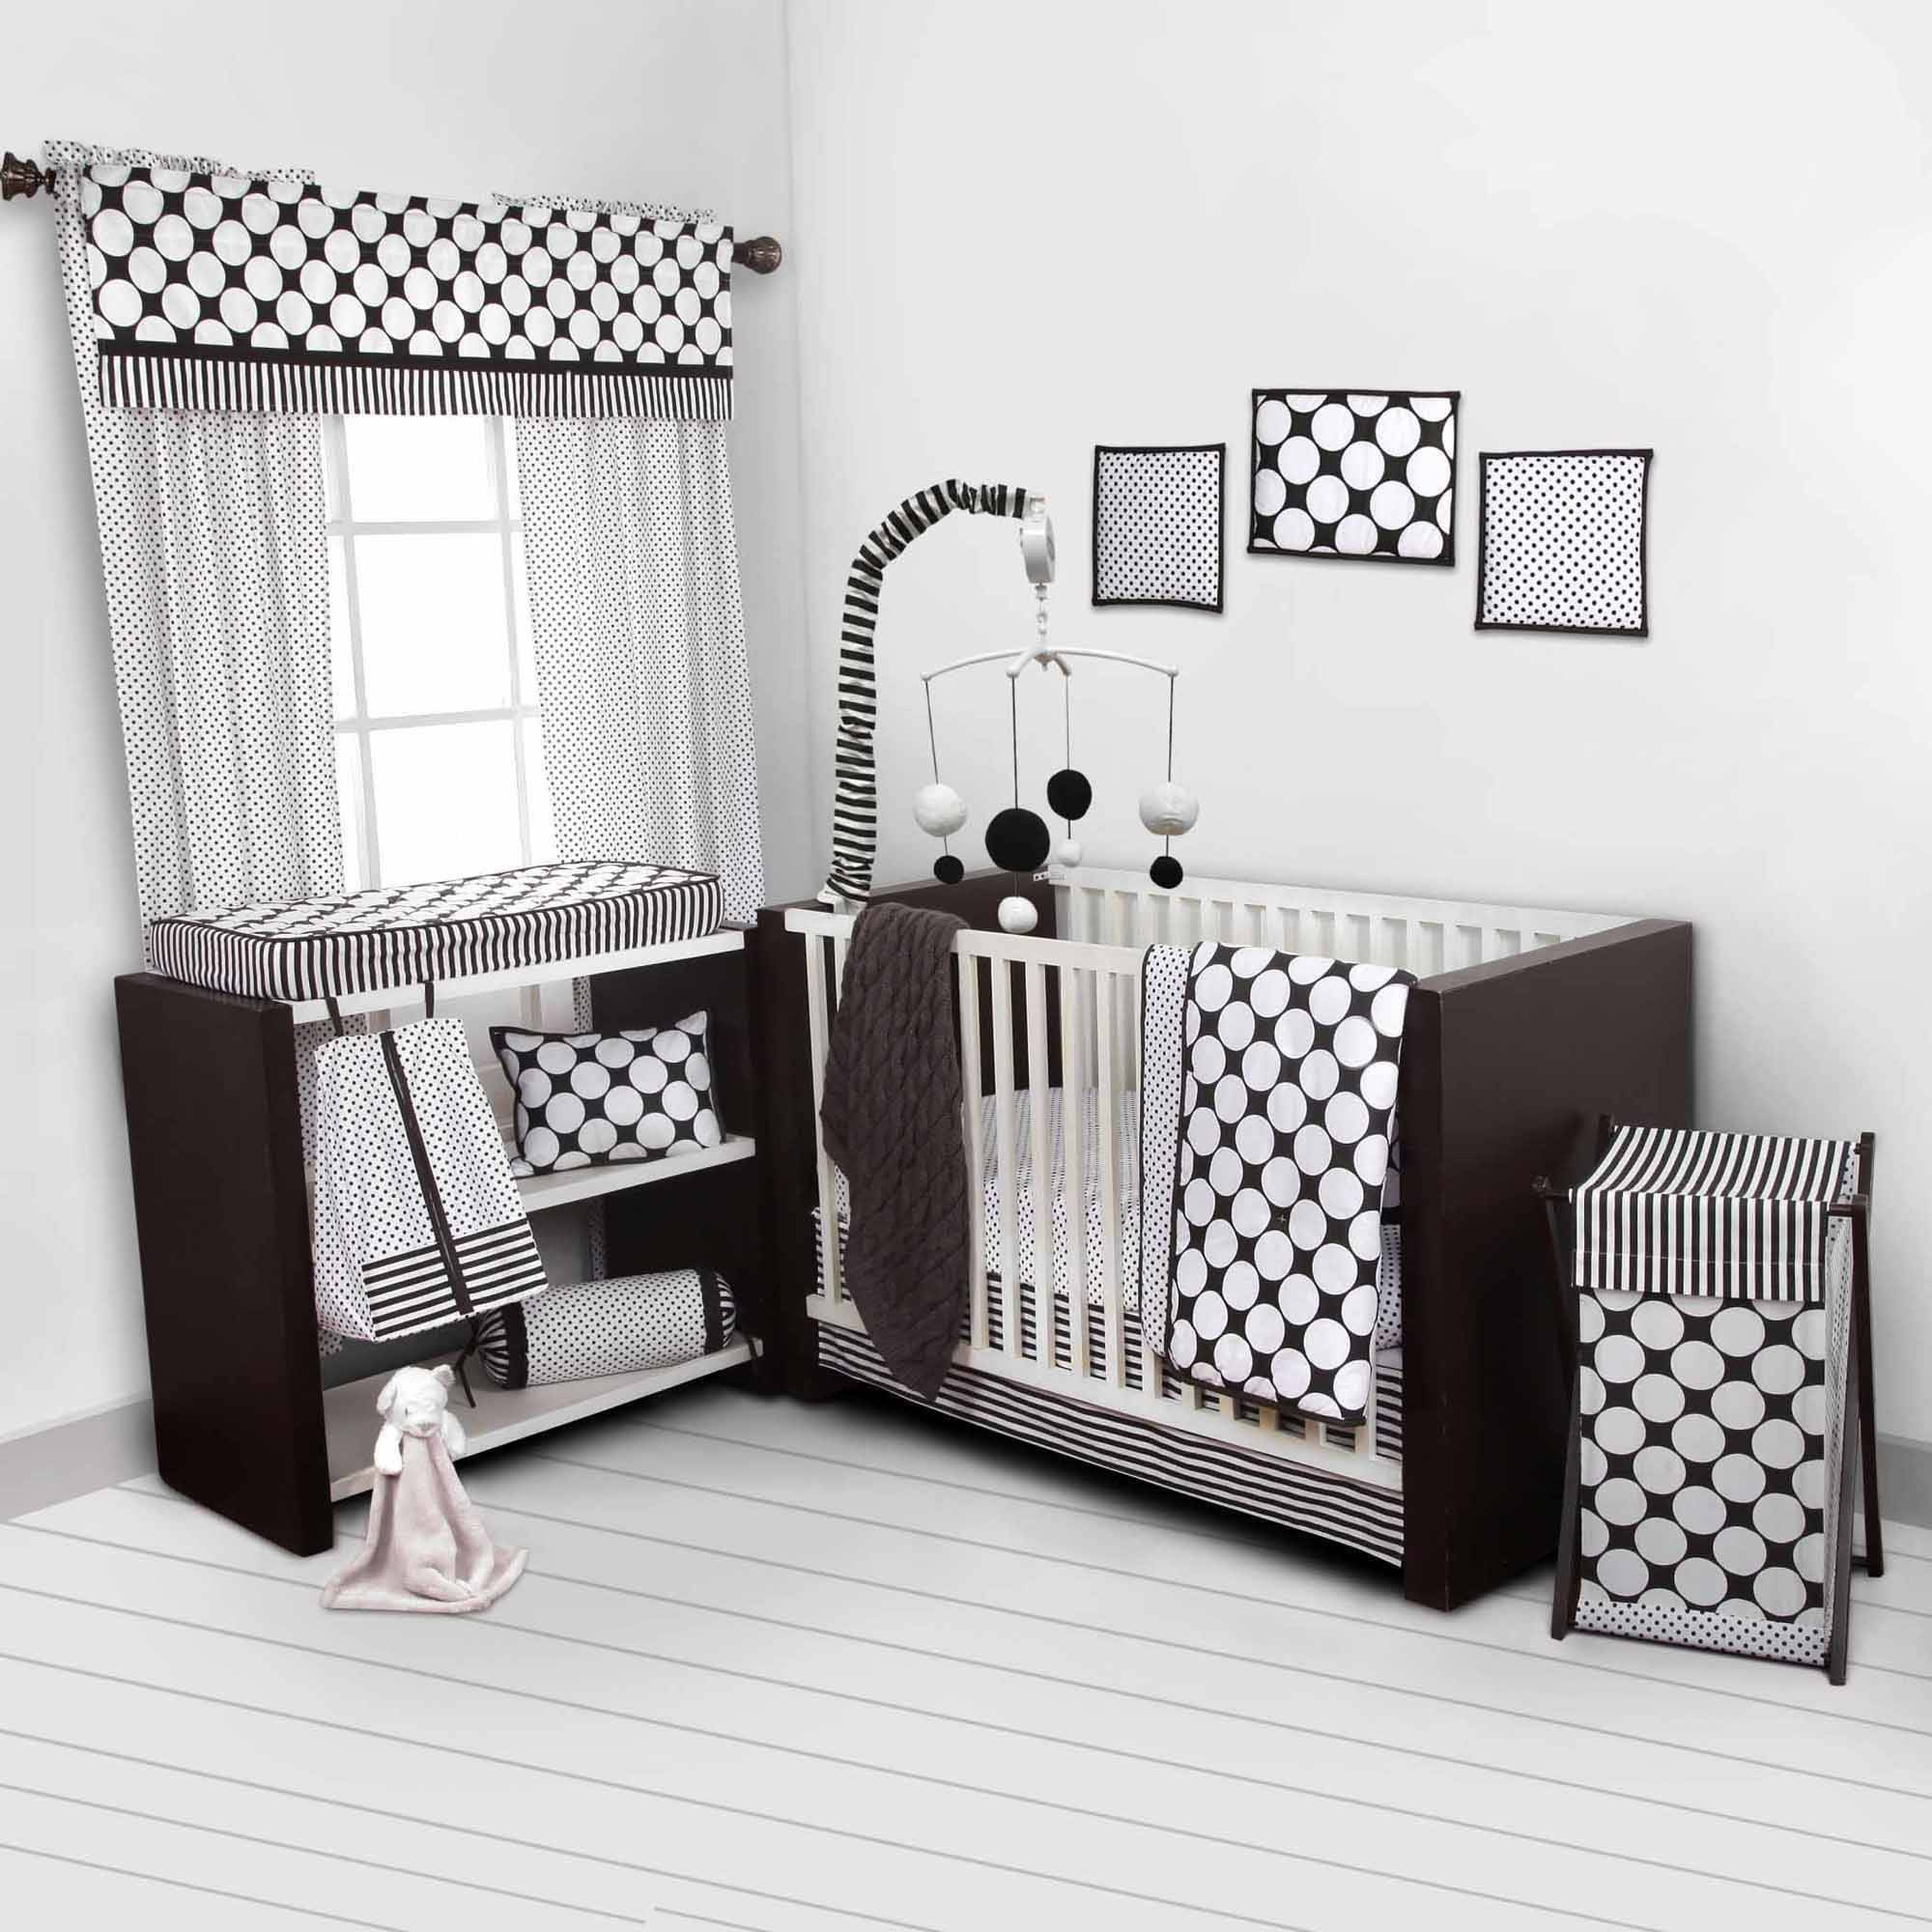 Bacati Dots/Pin Stripes 10-Piece Nursery in a Bag Crib Bedding Set (Bumper Pad not included) , Black/White for US standard Cribs